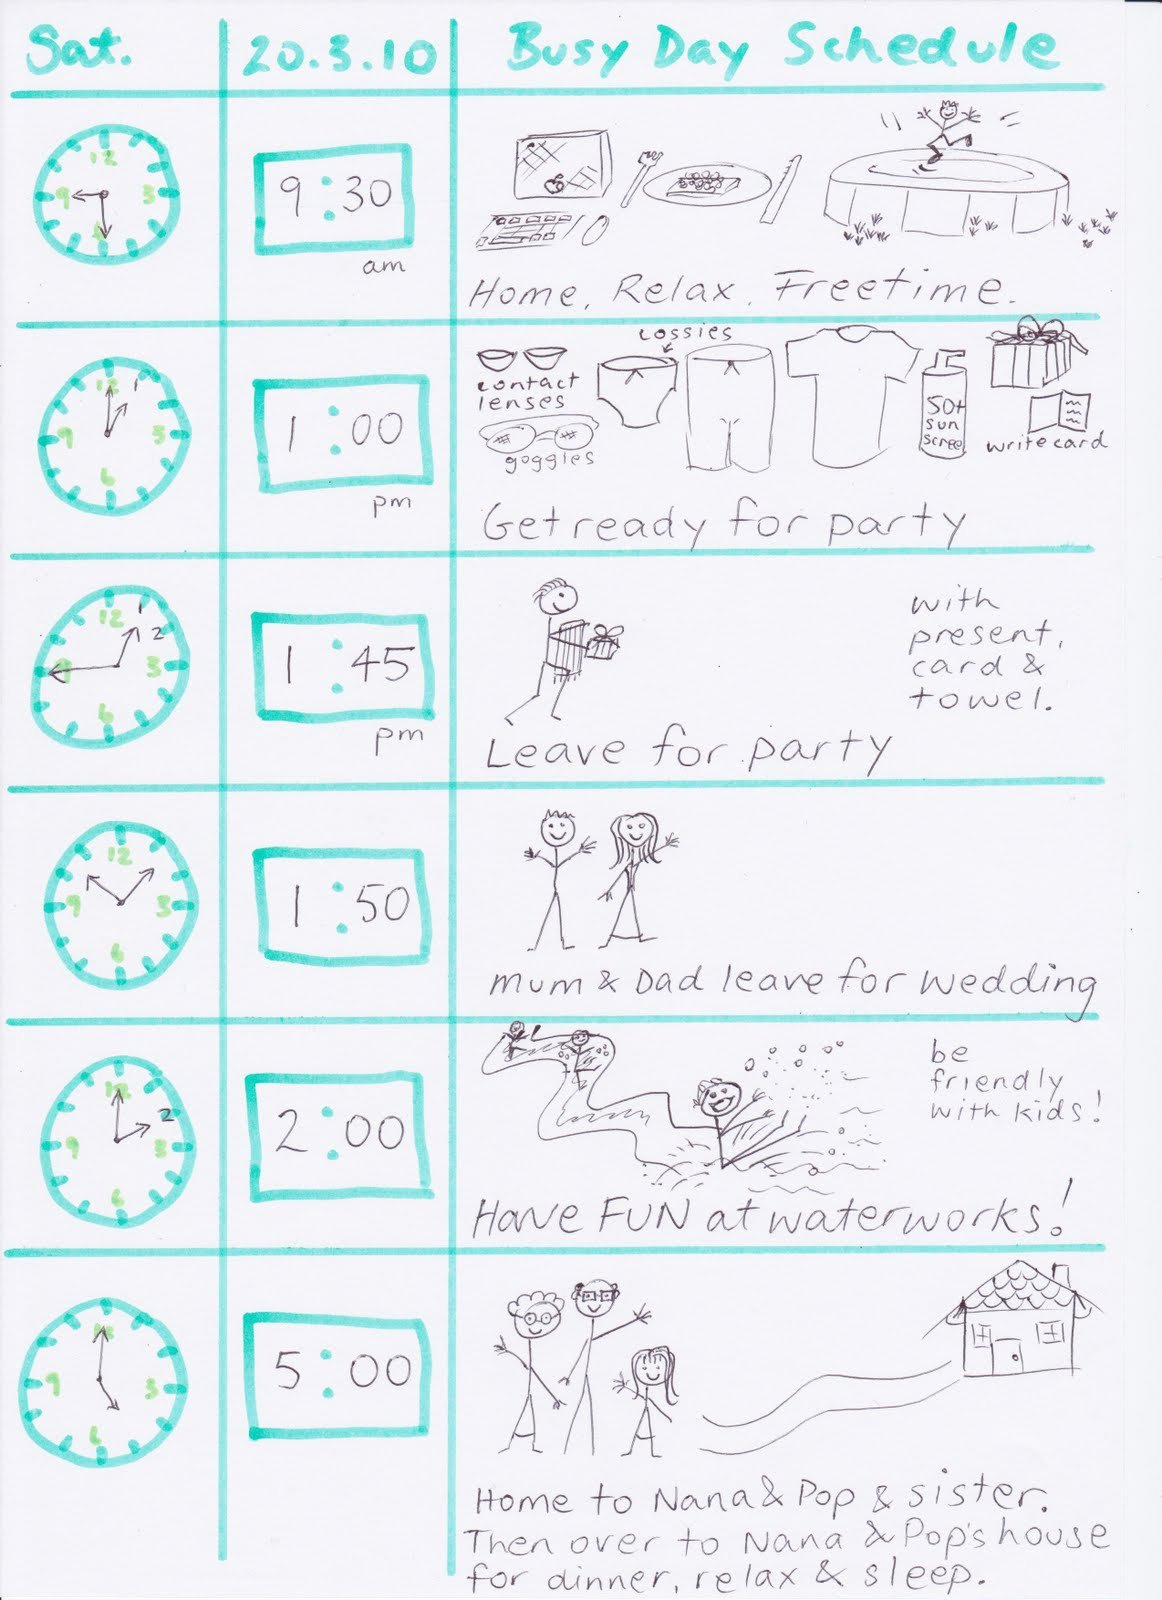 Daily Schedule Template for Kids Beautiful Mokas April 2010